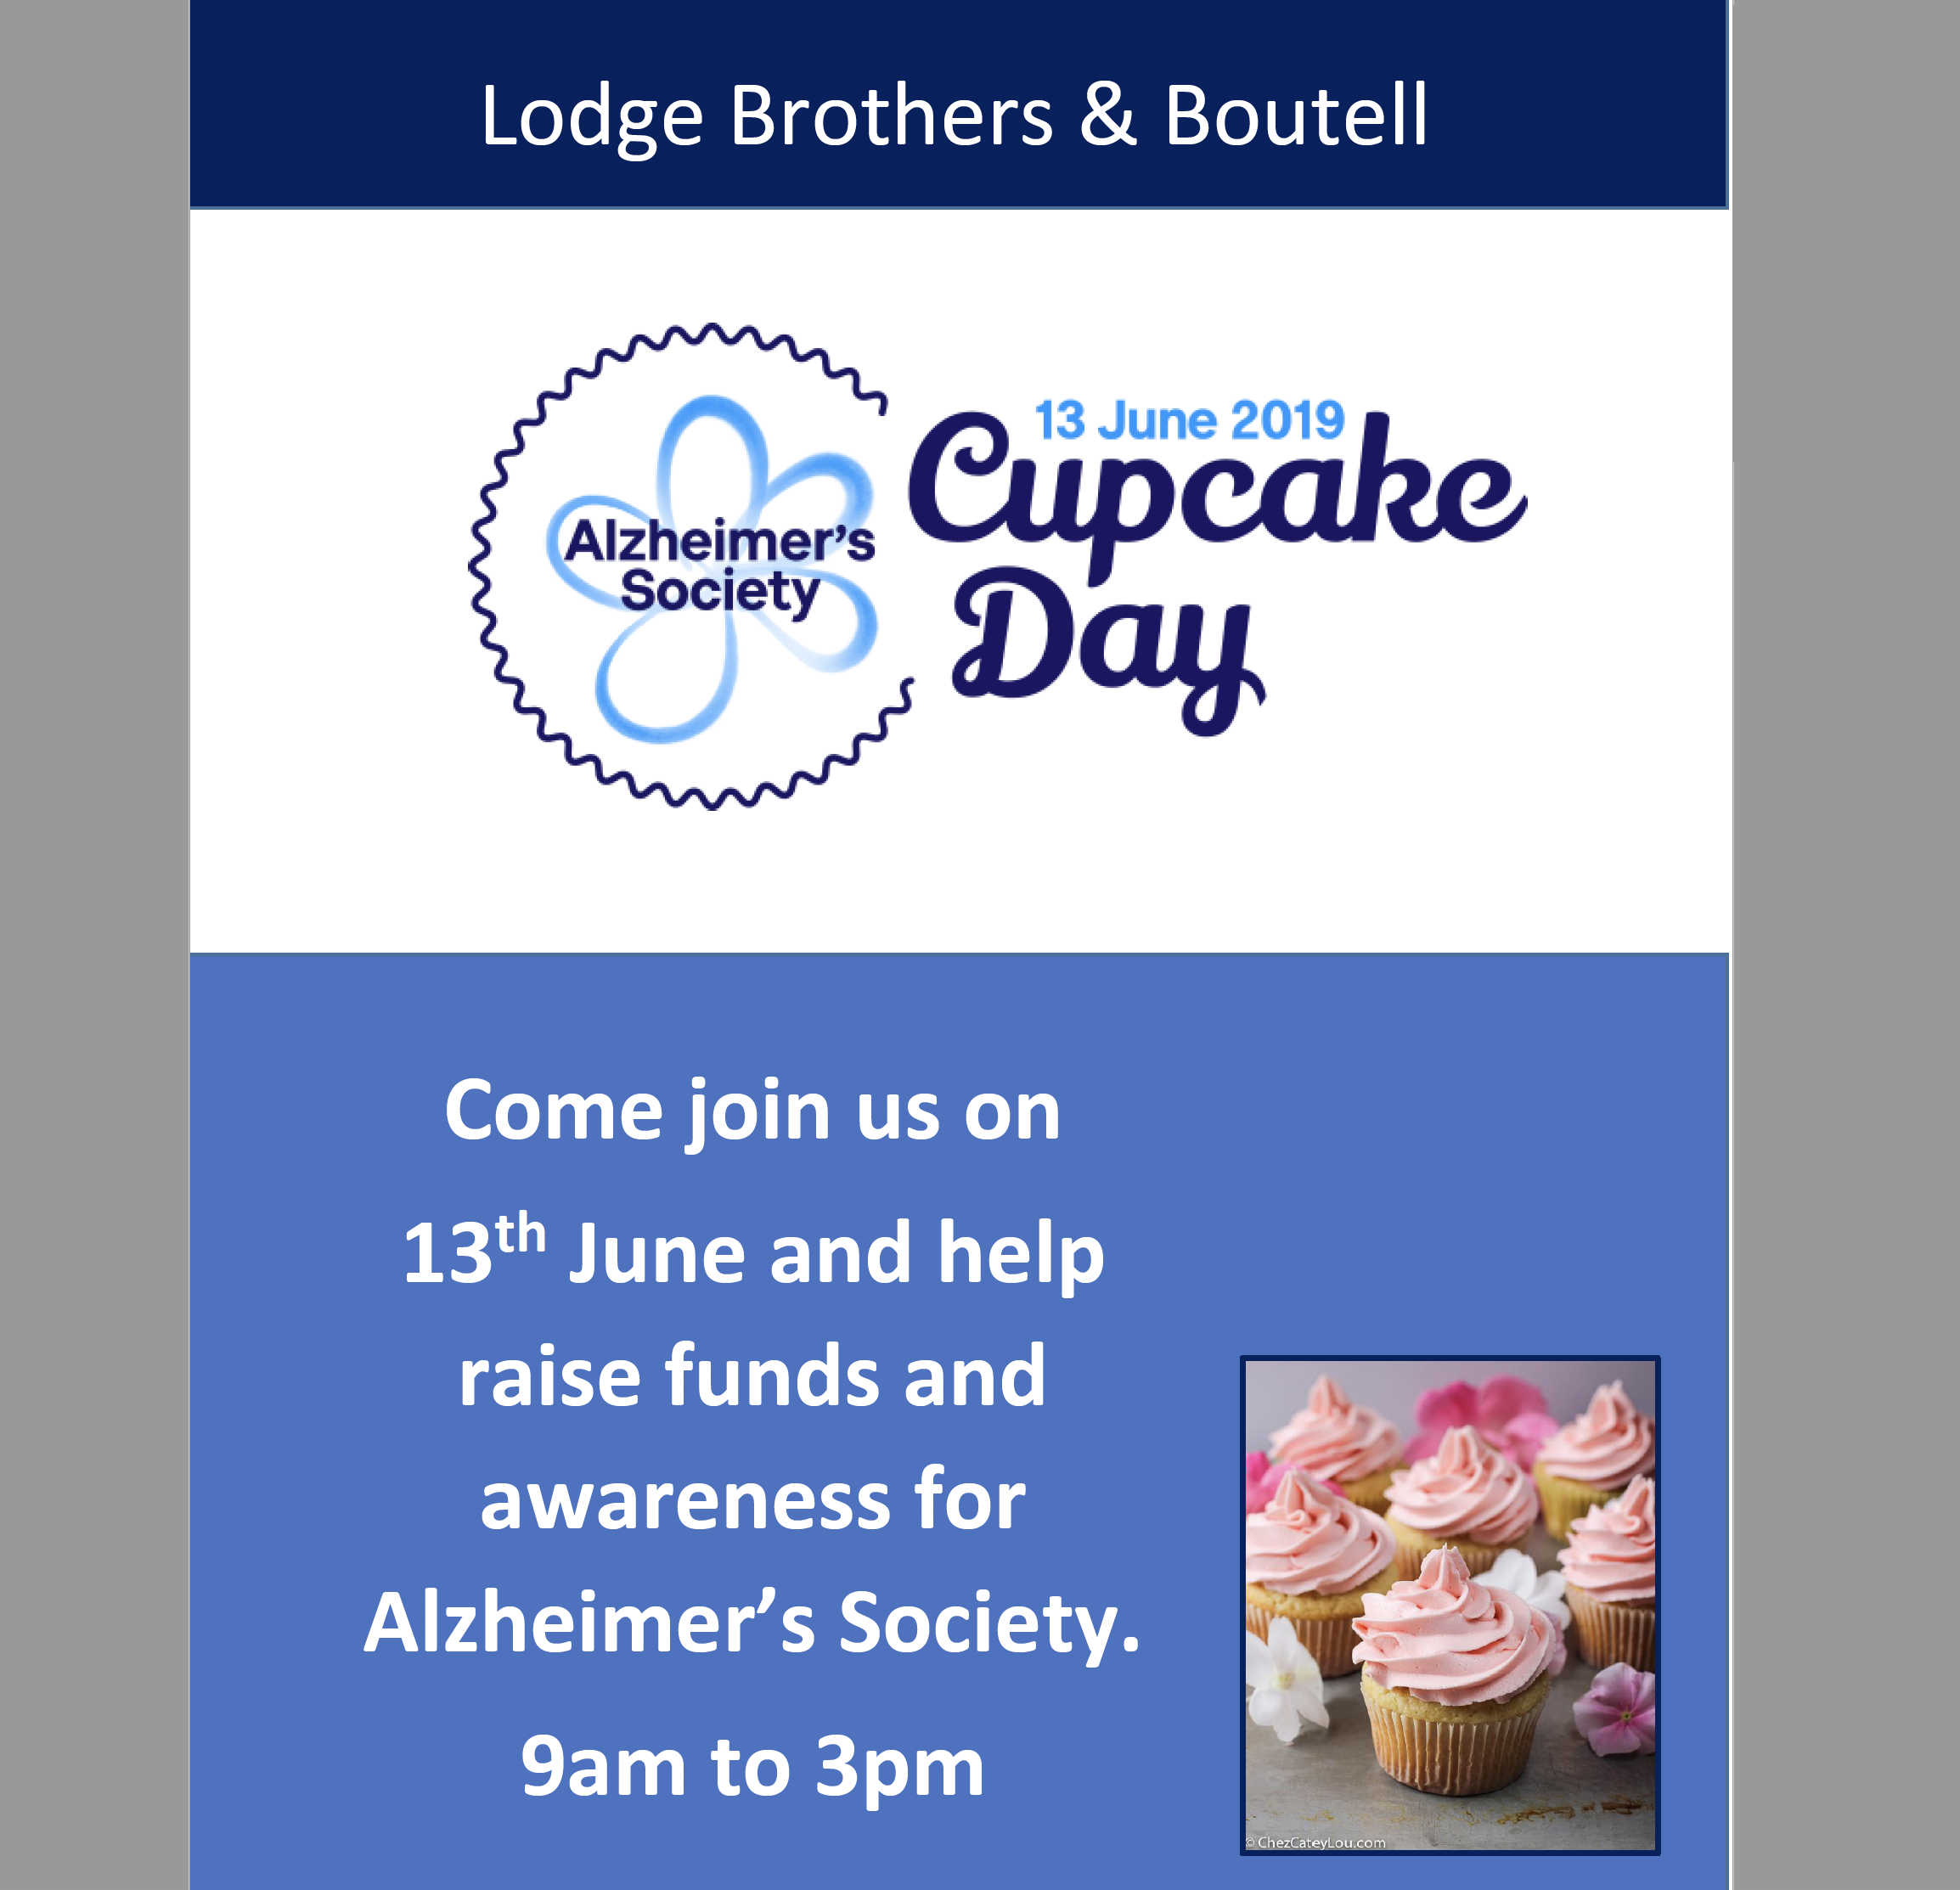 Alzheimer's Society 'Cupcake Day' 13th June 2019